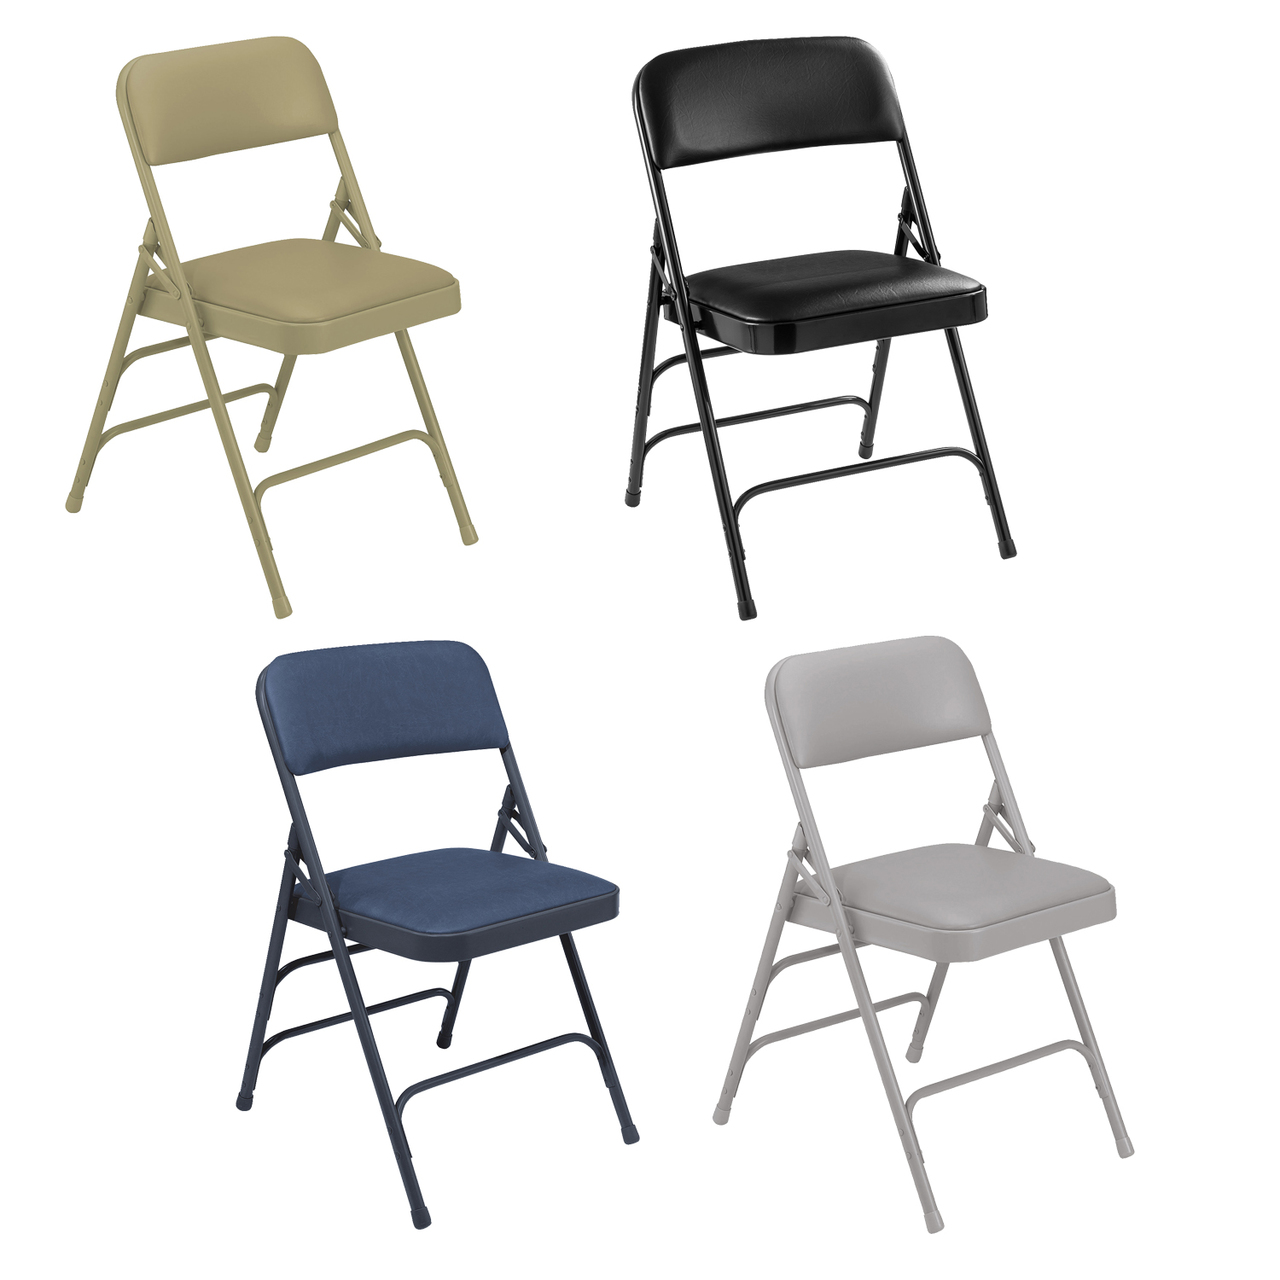 Admirable Body Builder Vinyl Padded Folding Chair By National Public Seating 1300 Series Pabps2019 Chair Design Images Pabps2019Com